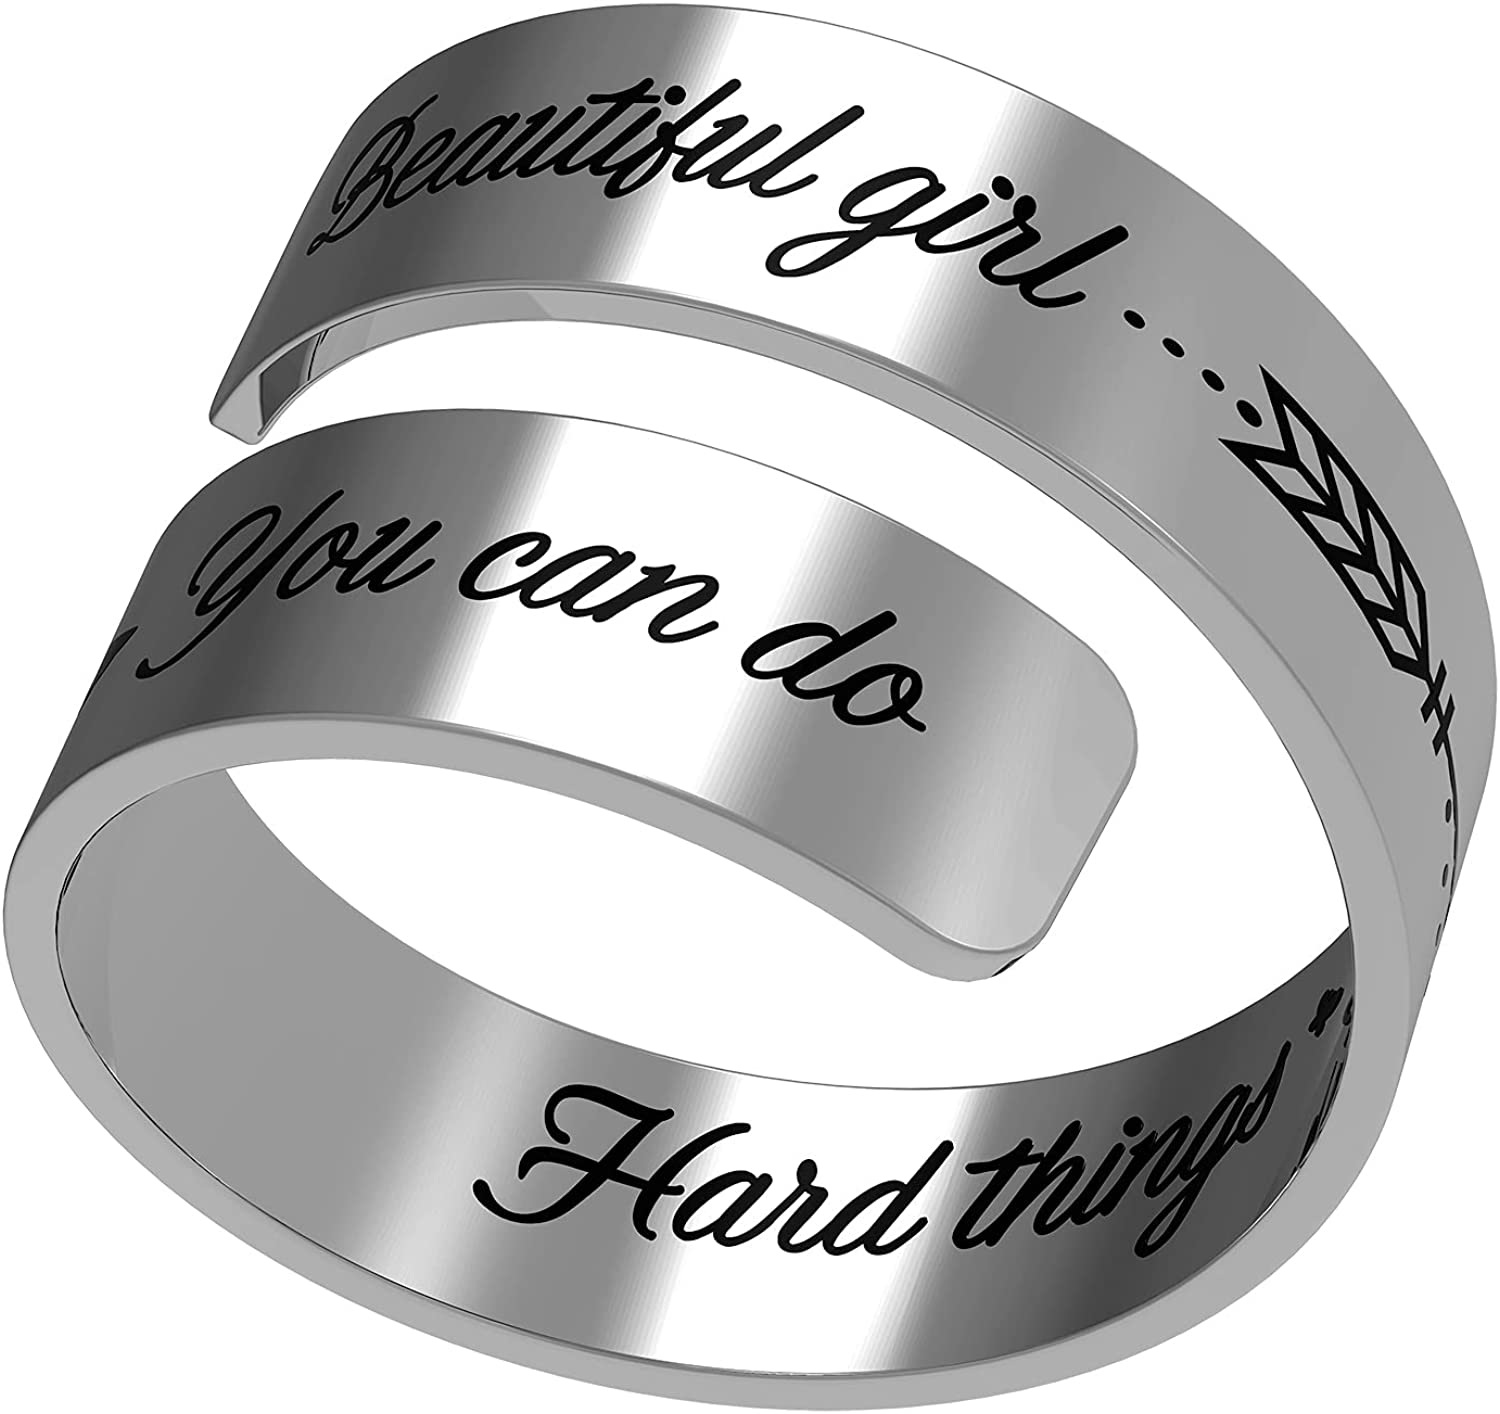 Women Max 52% OFF Inspirational Bracelets Ring Suit Gifts Max 42% OFF Best Friend Pe for